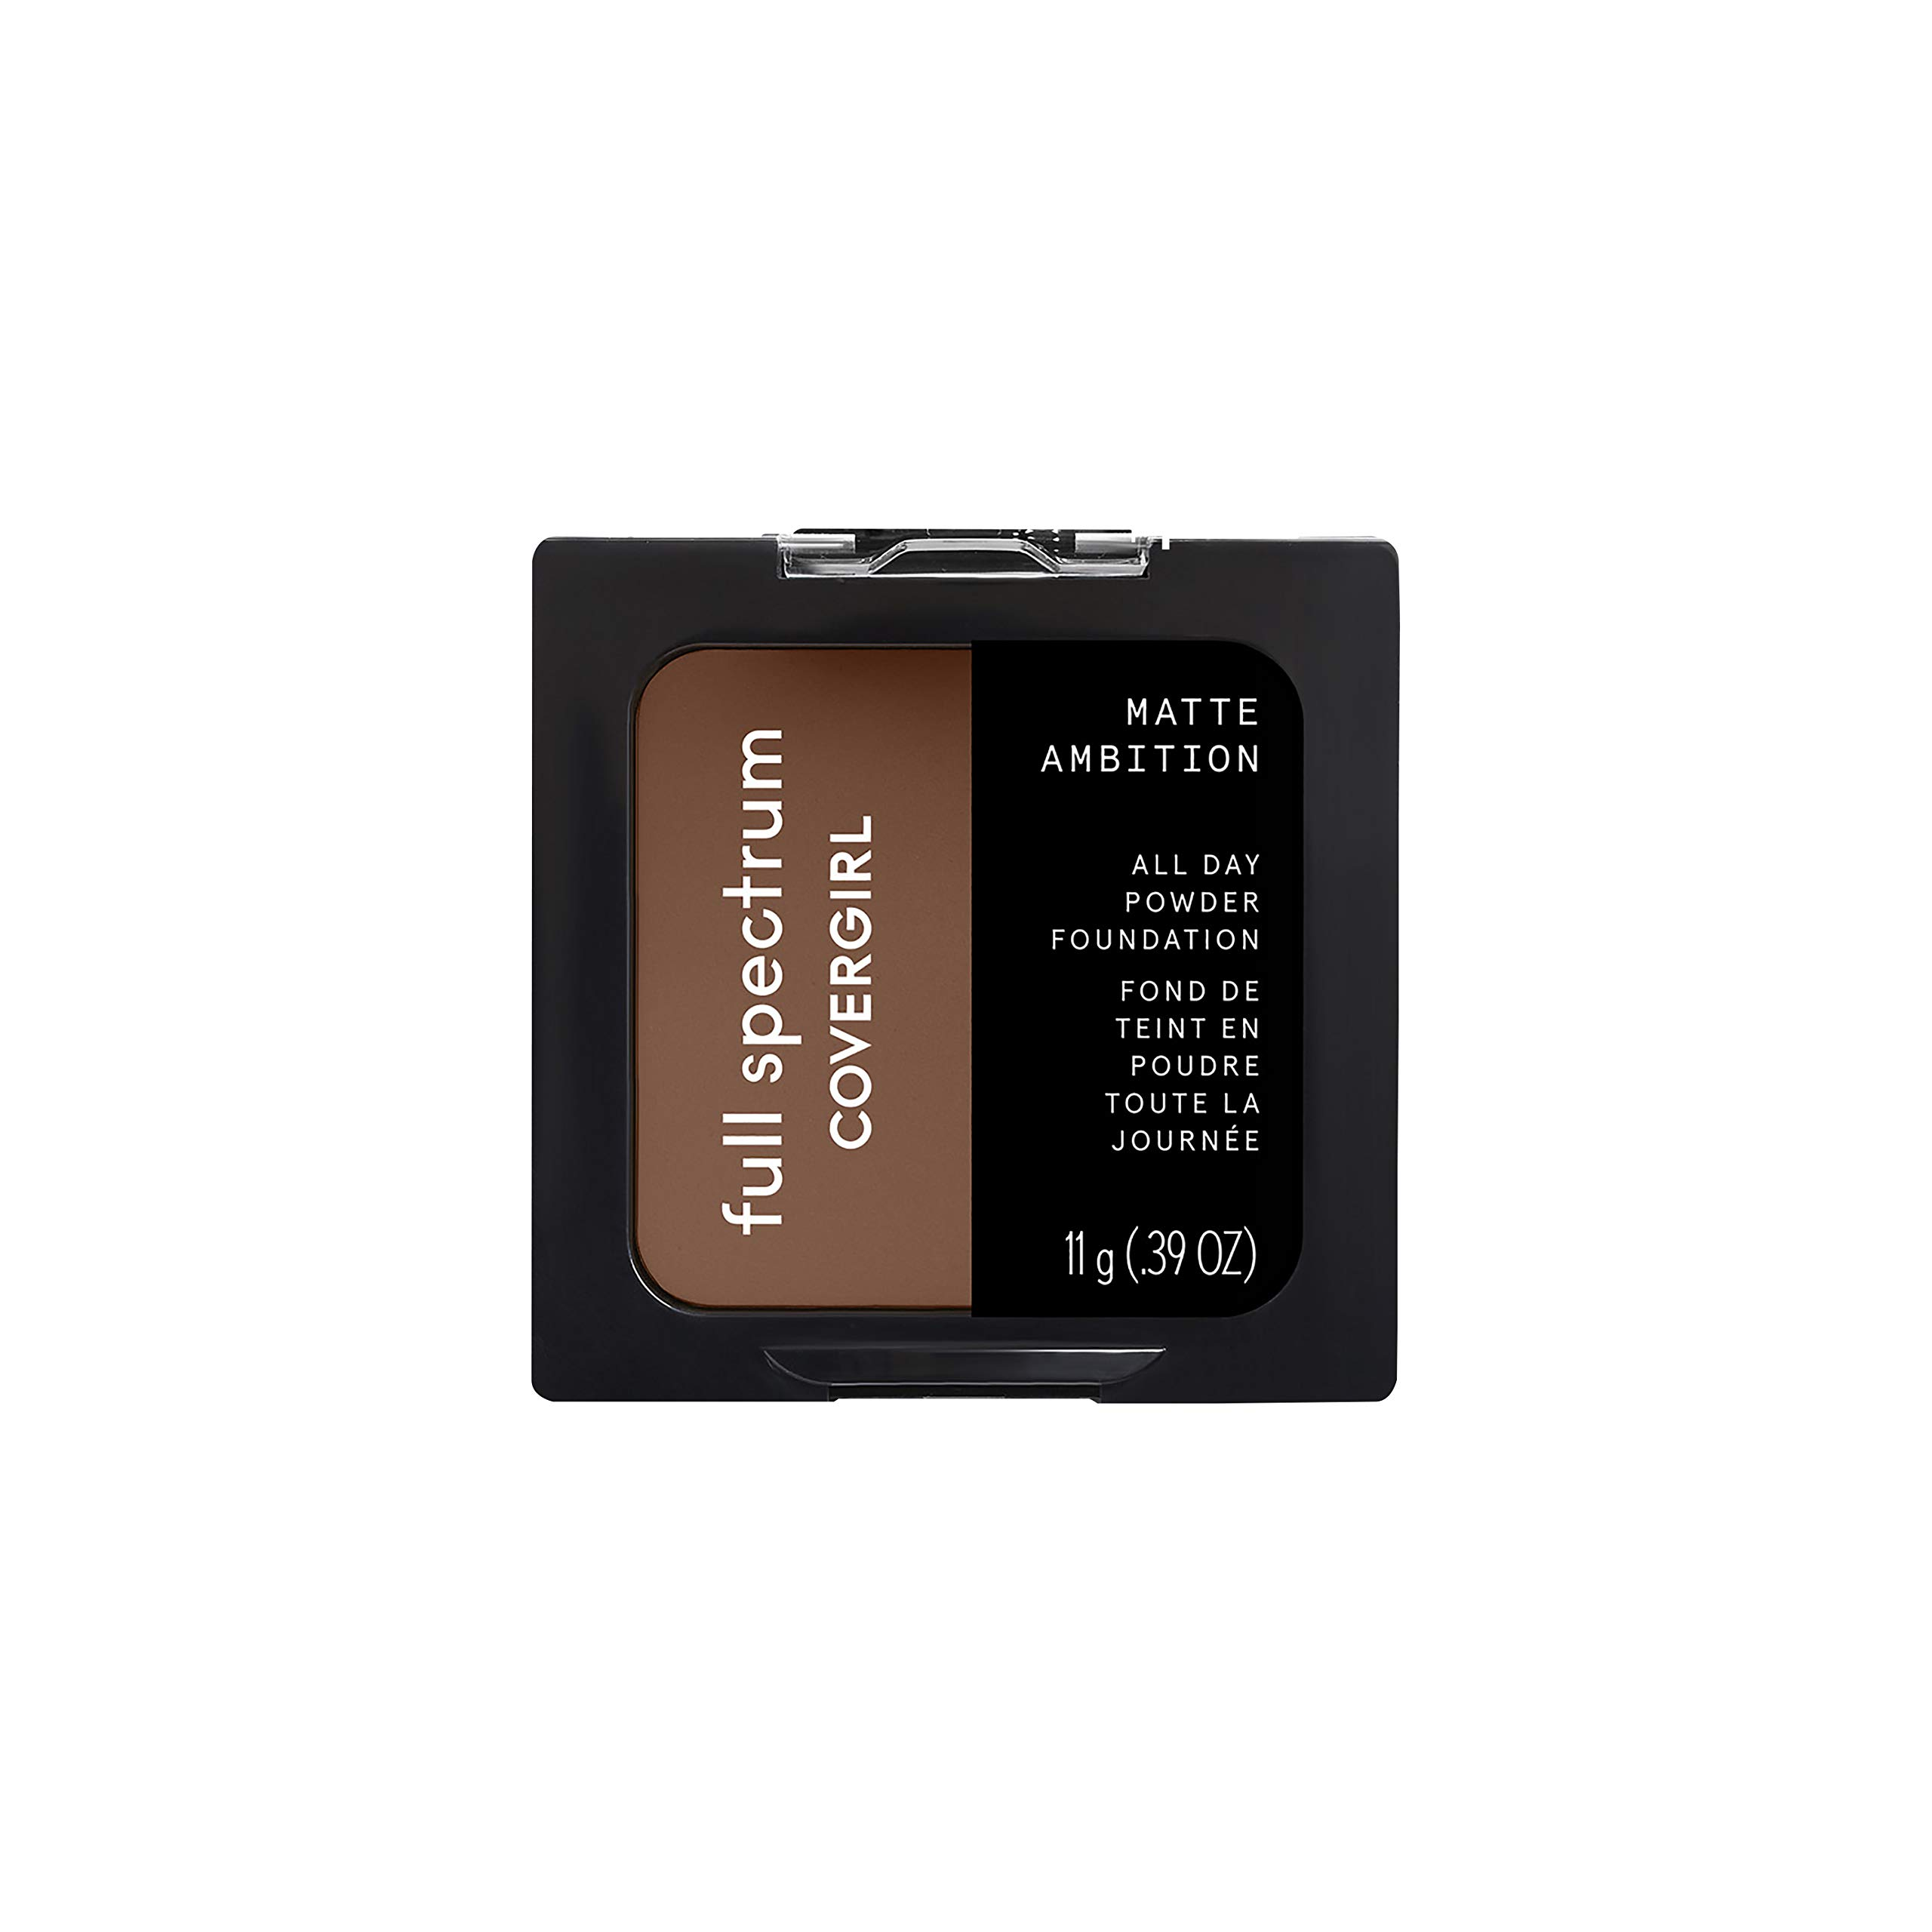 Covergirl Matte Ambition, All Day Powder Foundation, Deep Cool 3, 0.38 Ounce